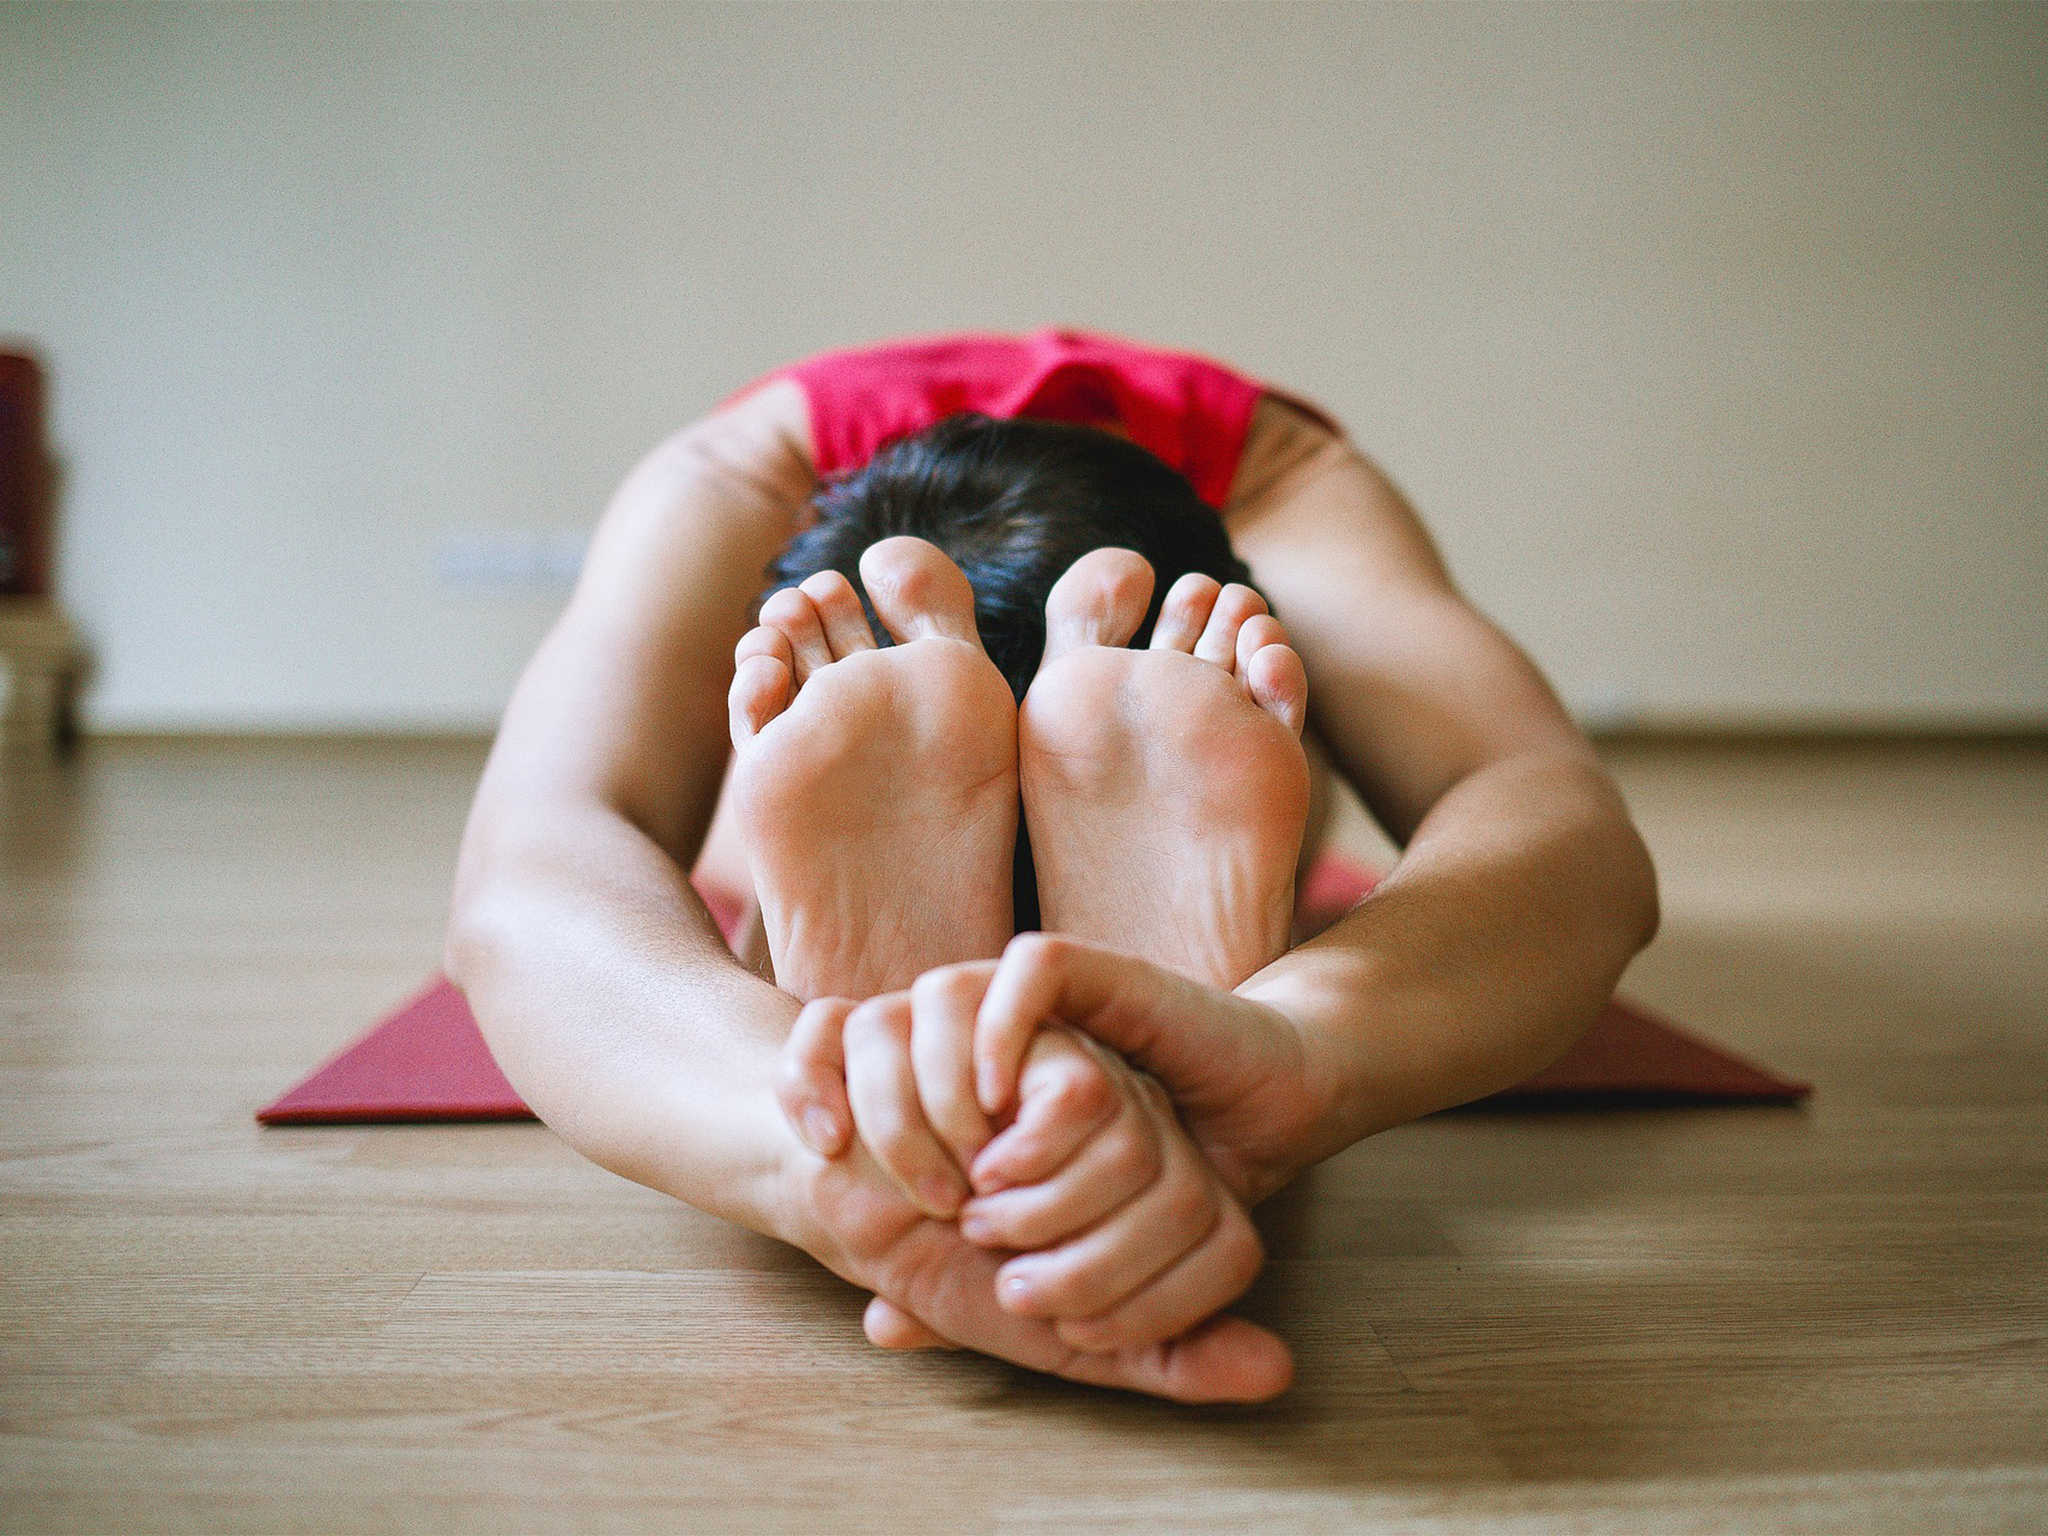 A woman stretching during a yoga class